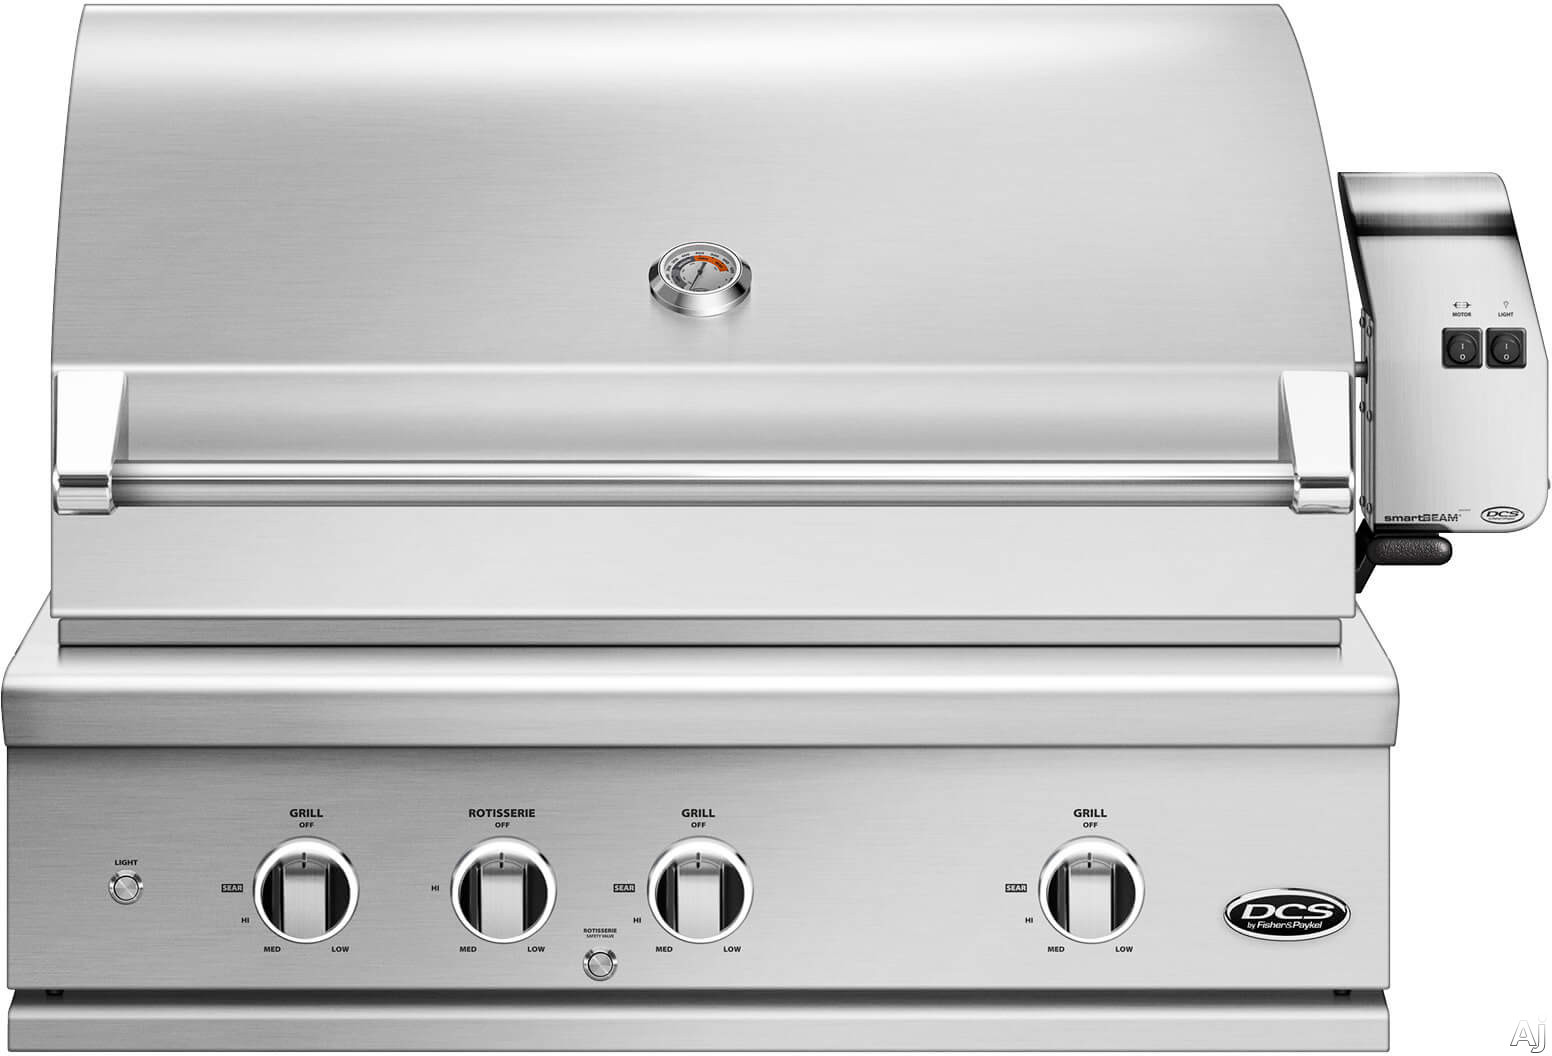 DCS Series 9 Evolution BE136RC 36 Inch Built-In Grill with Infrared Rotisserie, Charcoal Smoker Tray, Extra Cooking Area, Easy Lift Hood, Intuitive Lighting and Rack & Tool Storage